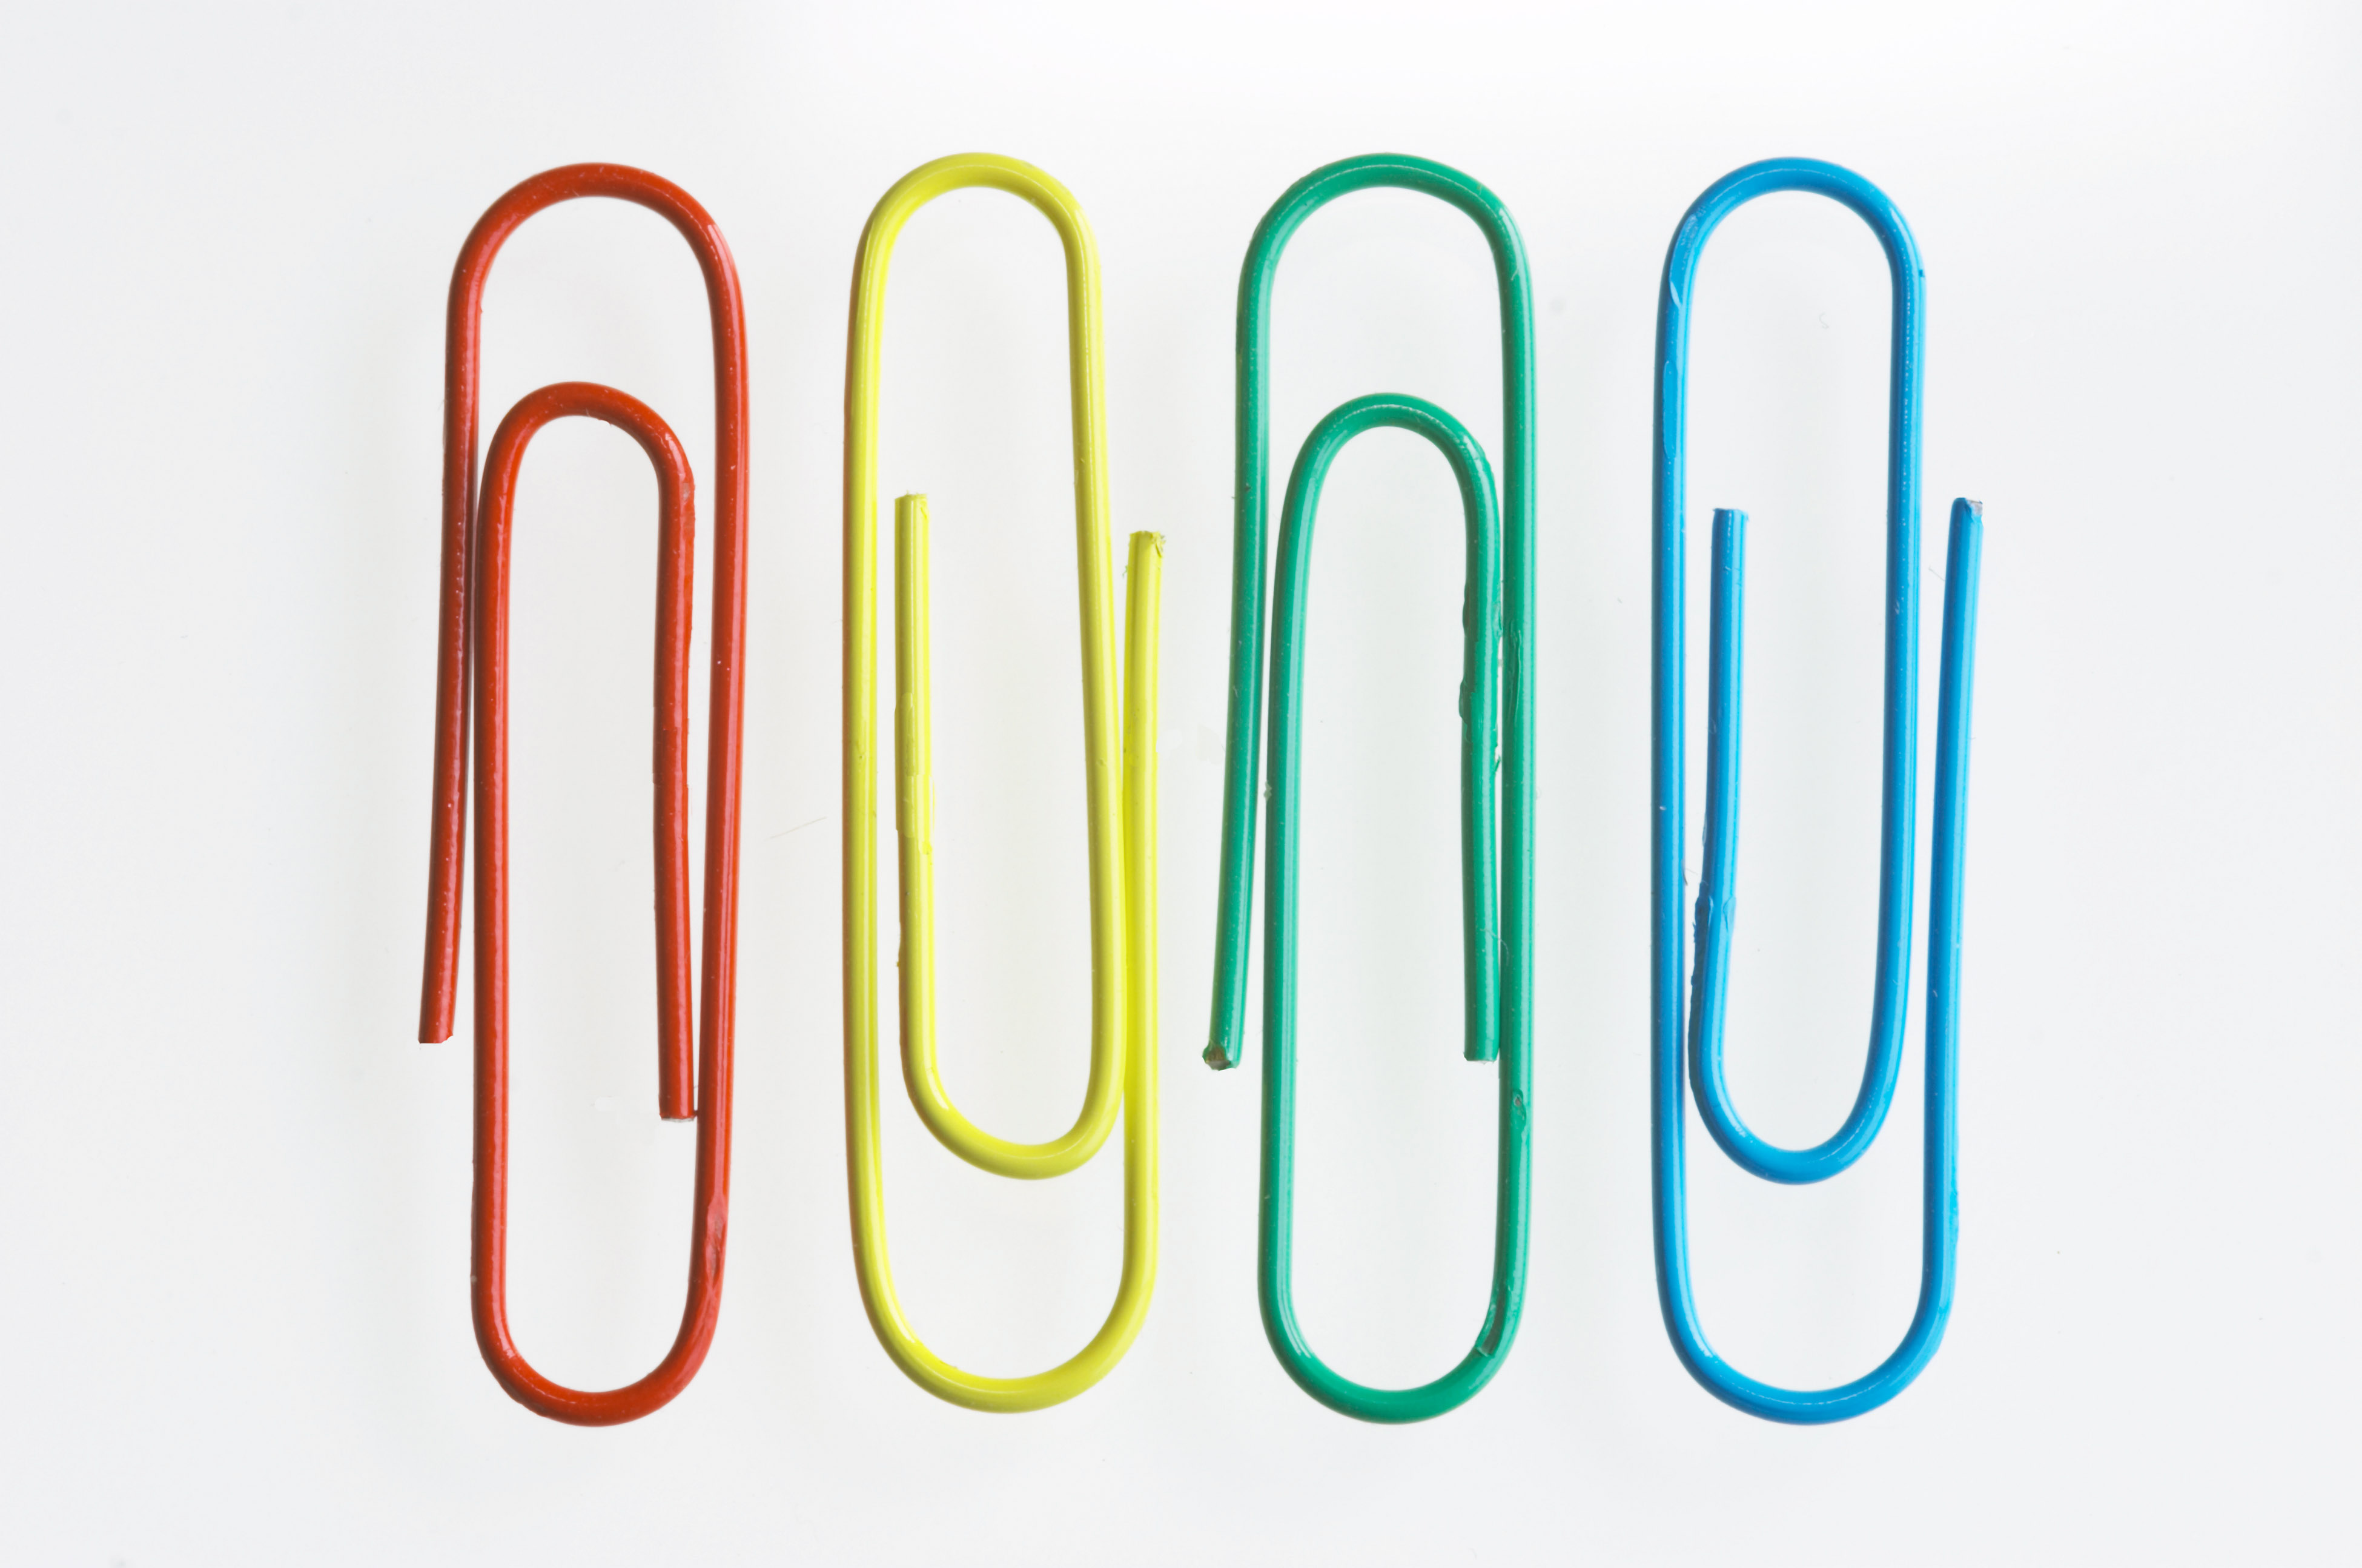 four paper clips: red, yellow, green, blue